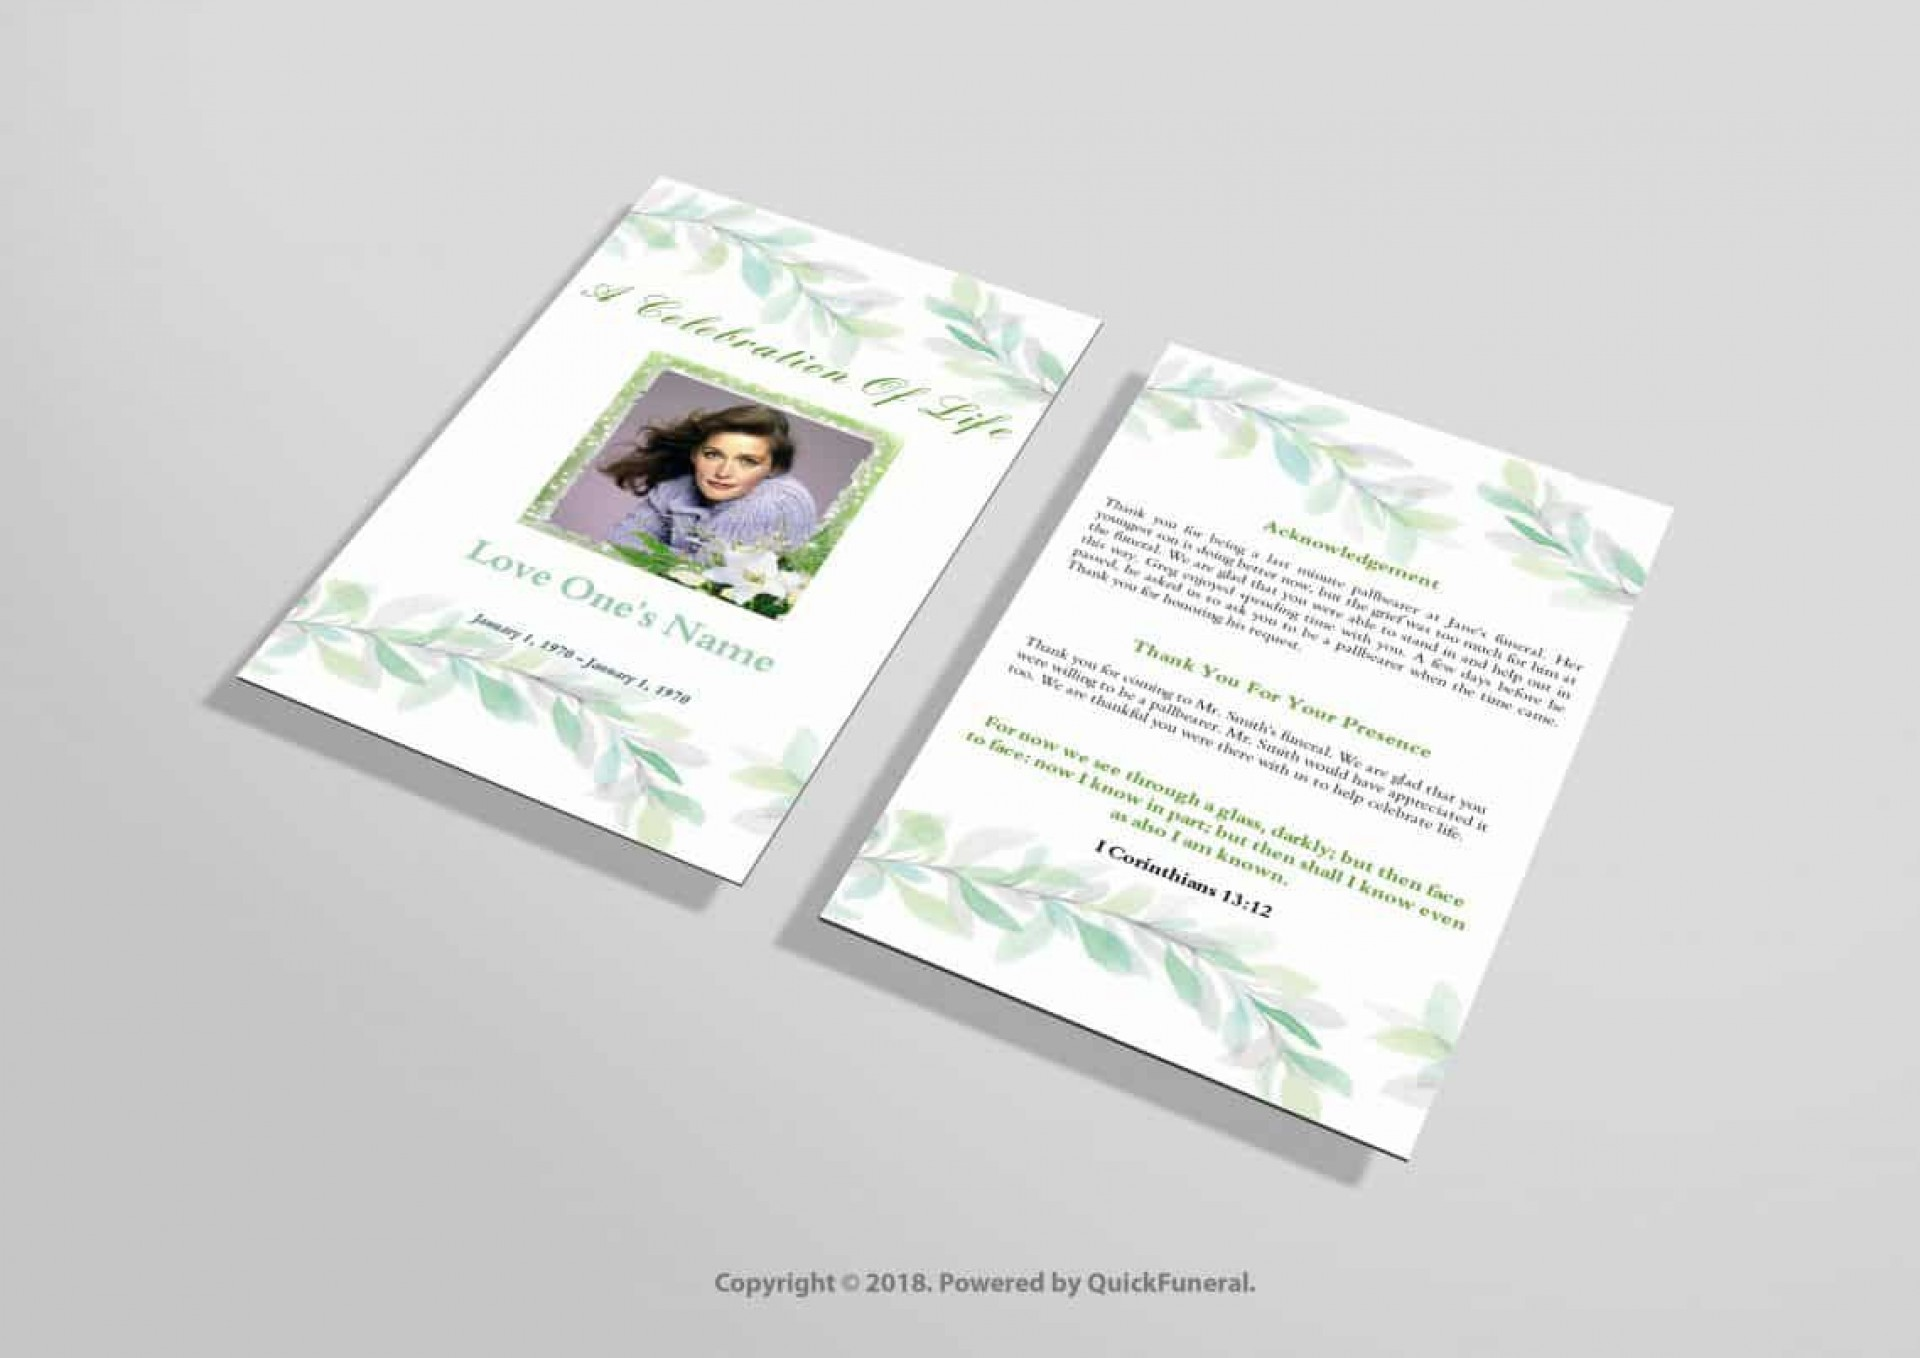 016 Incredible Funeral Invitation Template Free Inspiration  Memorial Service Card Reception1920